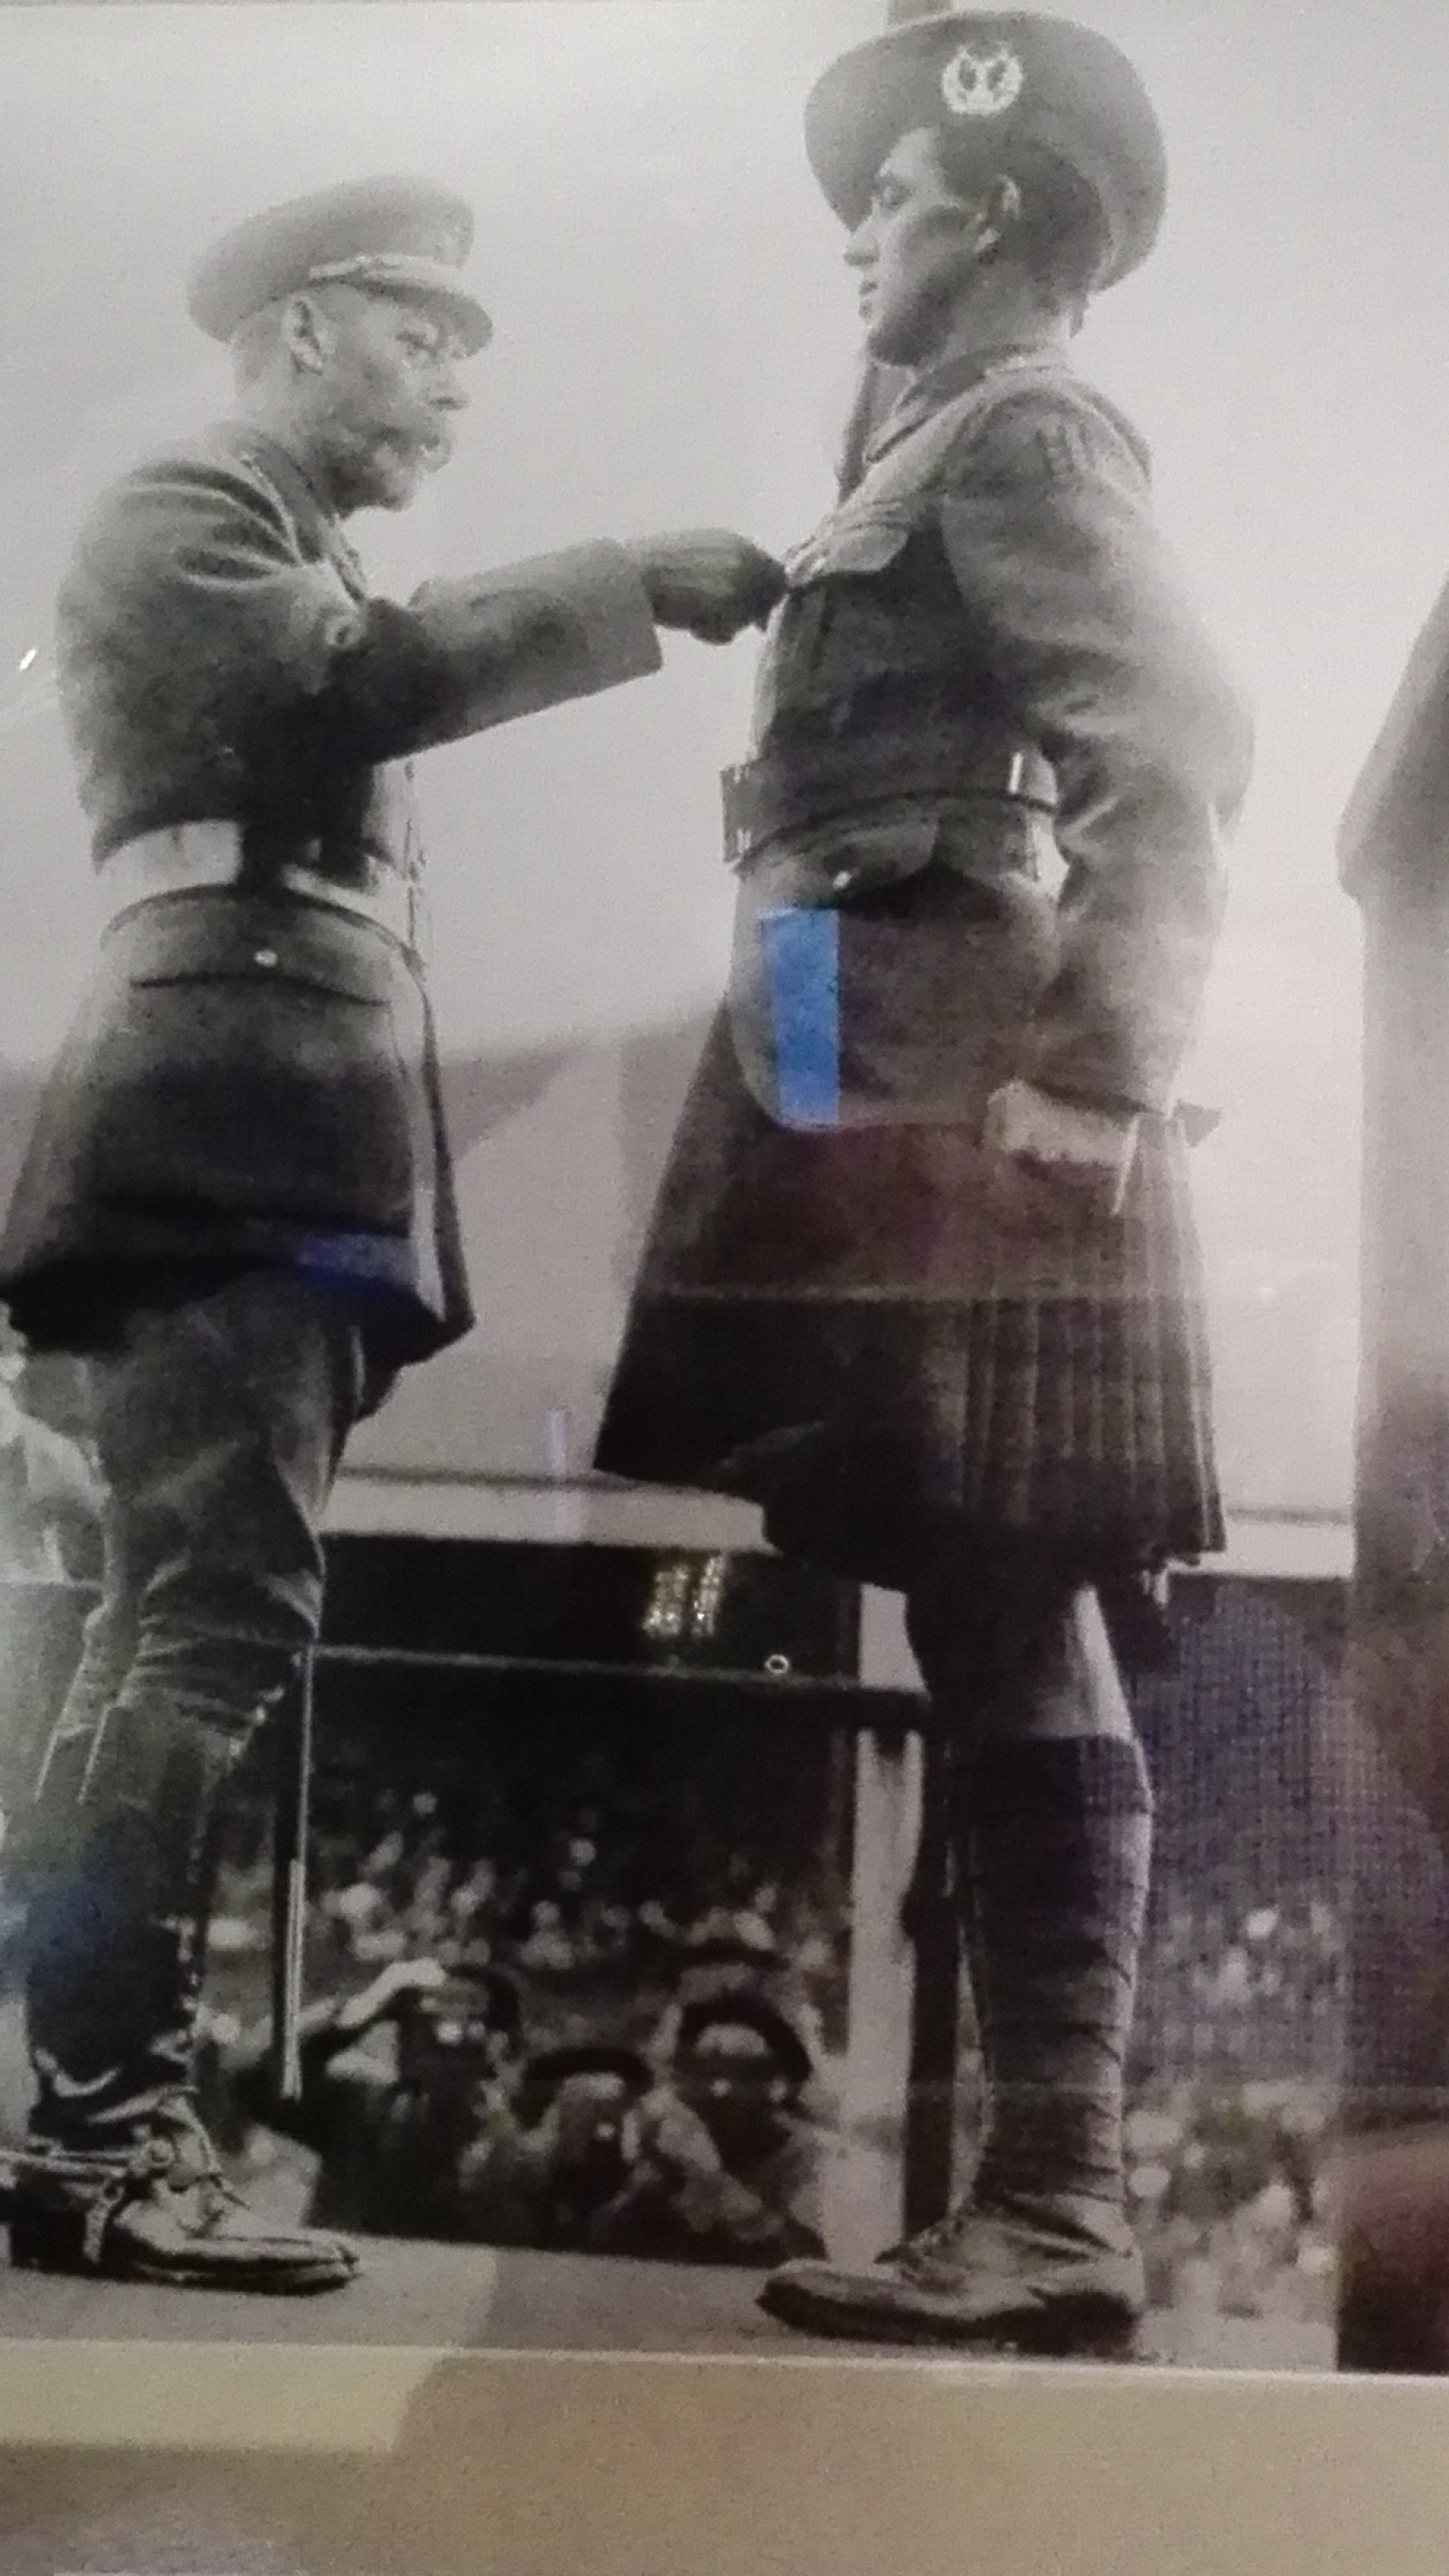 King George 5 presents Pte George McIntosh with his Victoria Cross at Ibrox Park Sept 1917, great to see our club still support our military no matter their faith. Looking forward to the tribute this